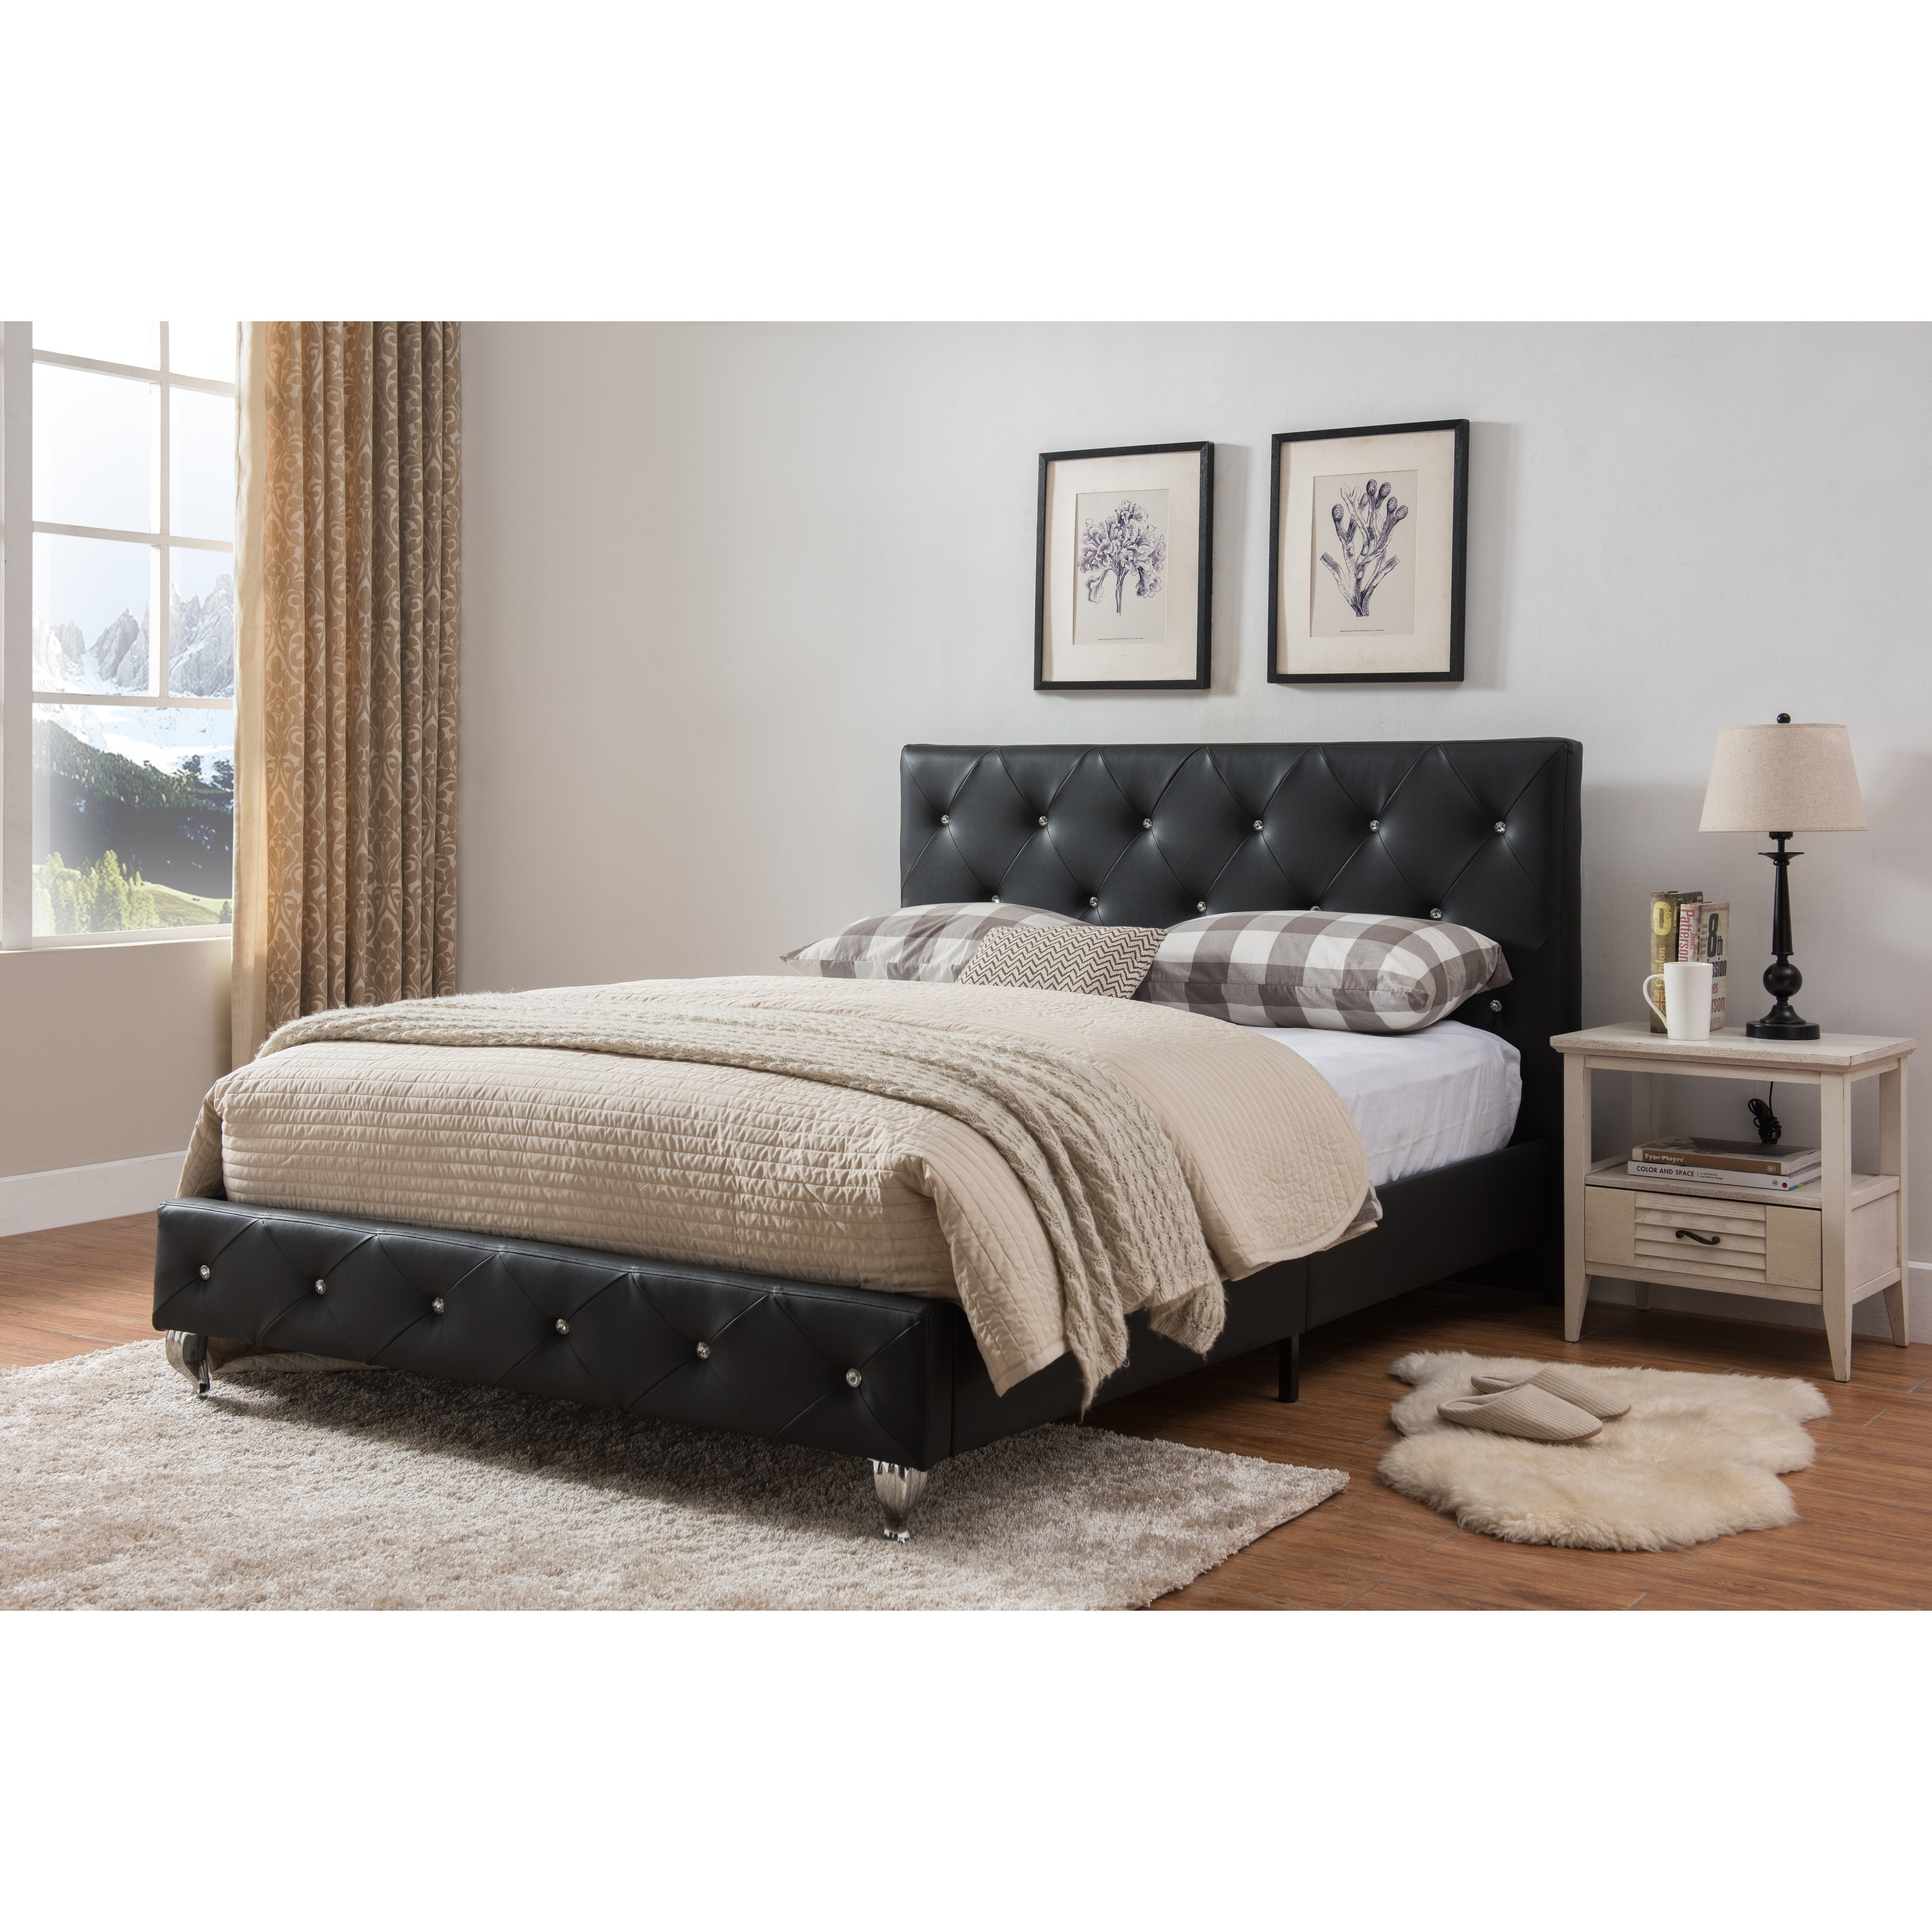 Shop Black Friday Deals On King Size Upholstered Beds Black Faux Leather On Sale Overstock 24238761